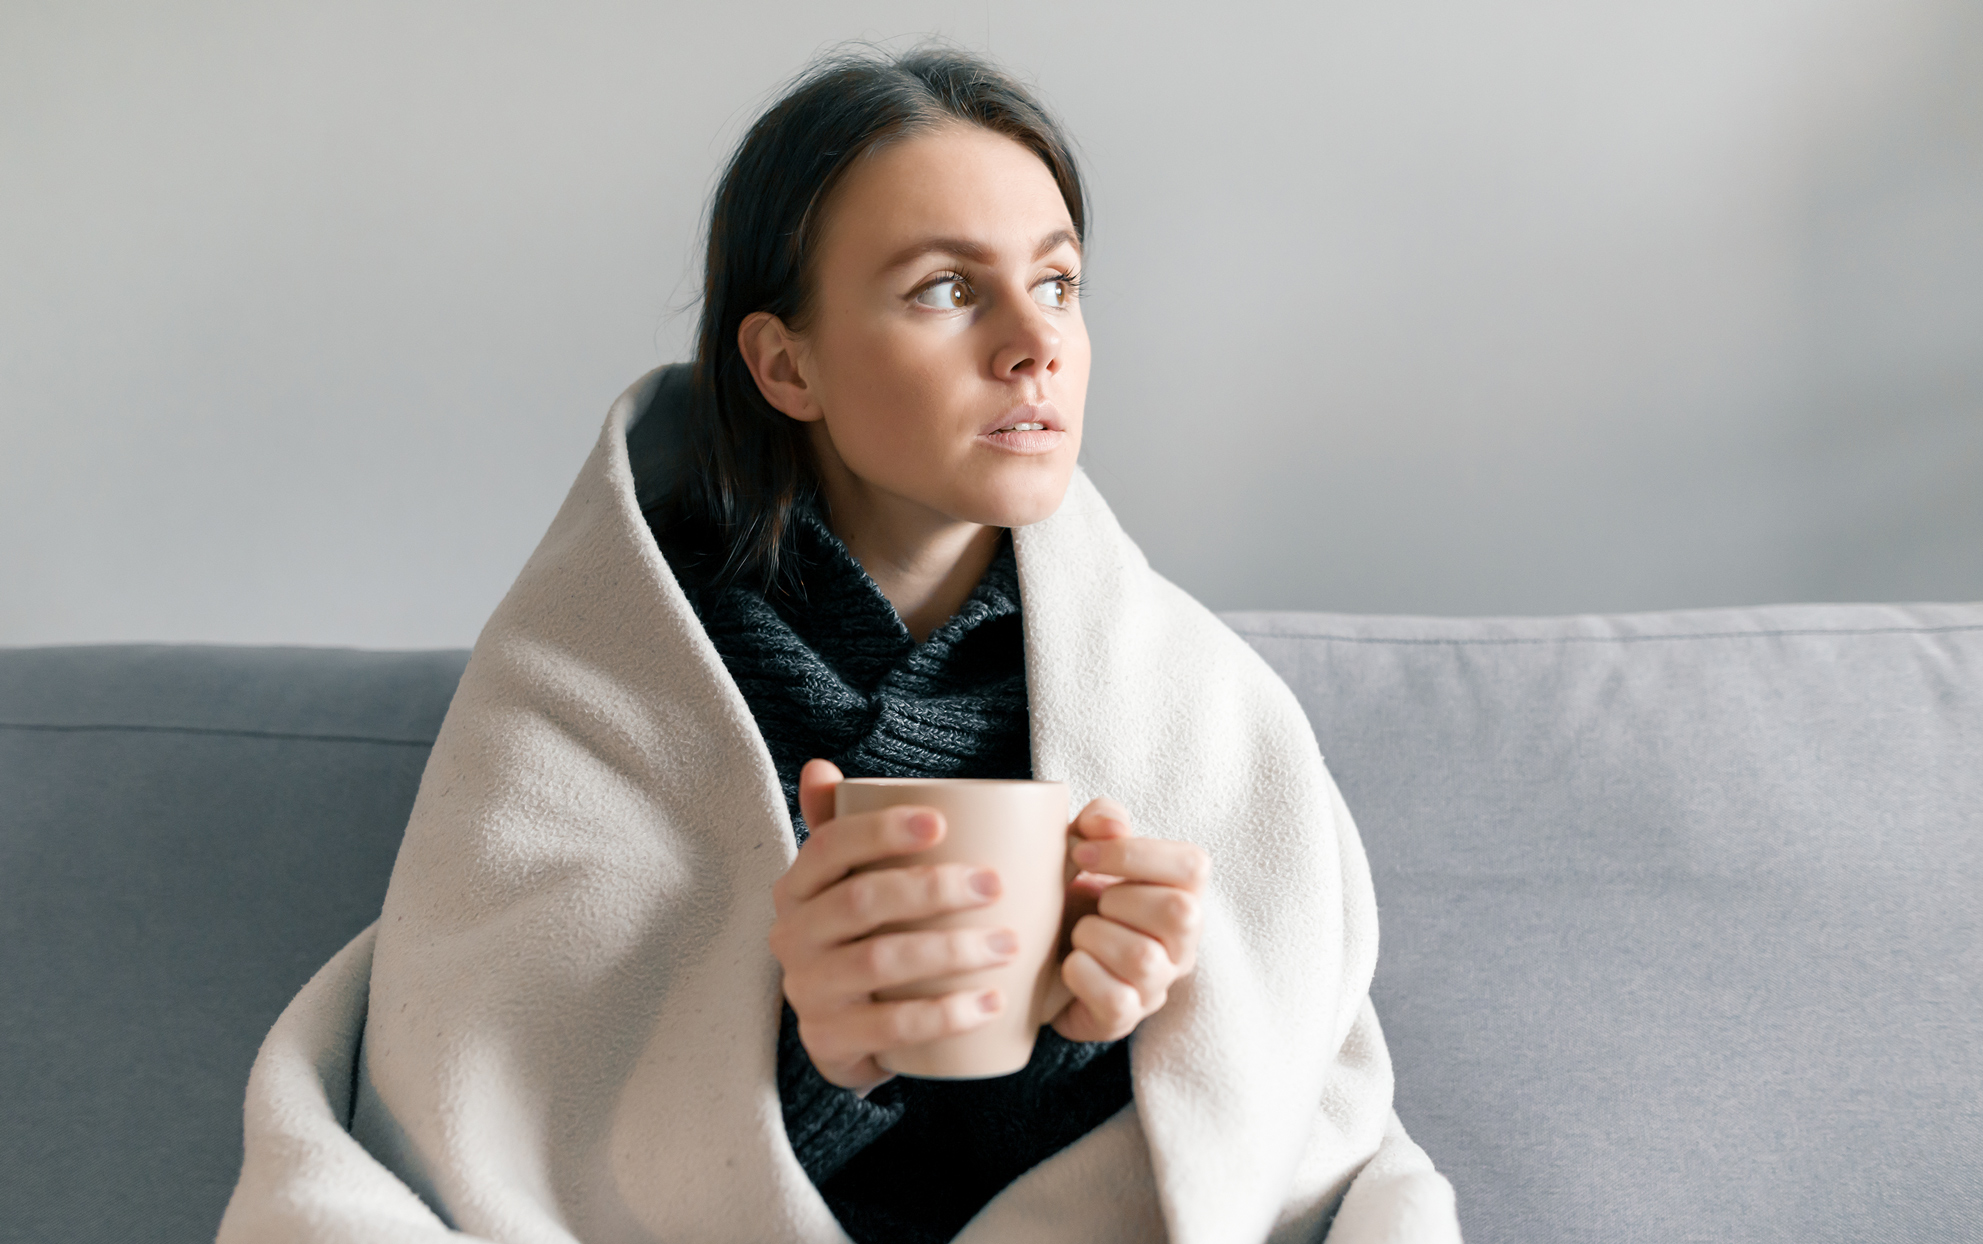 Woman on a sofa under a blanket drinking from a mug